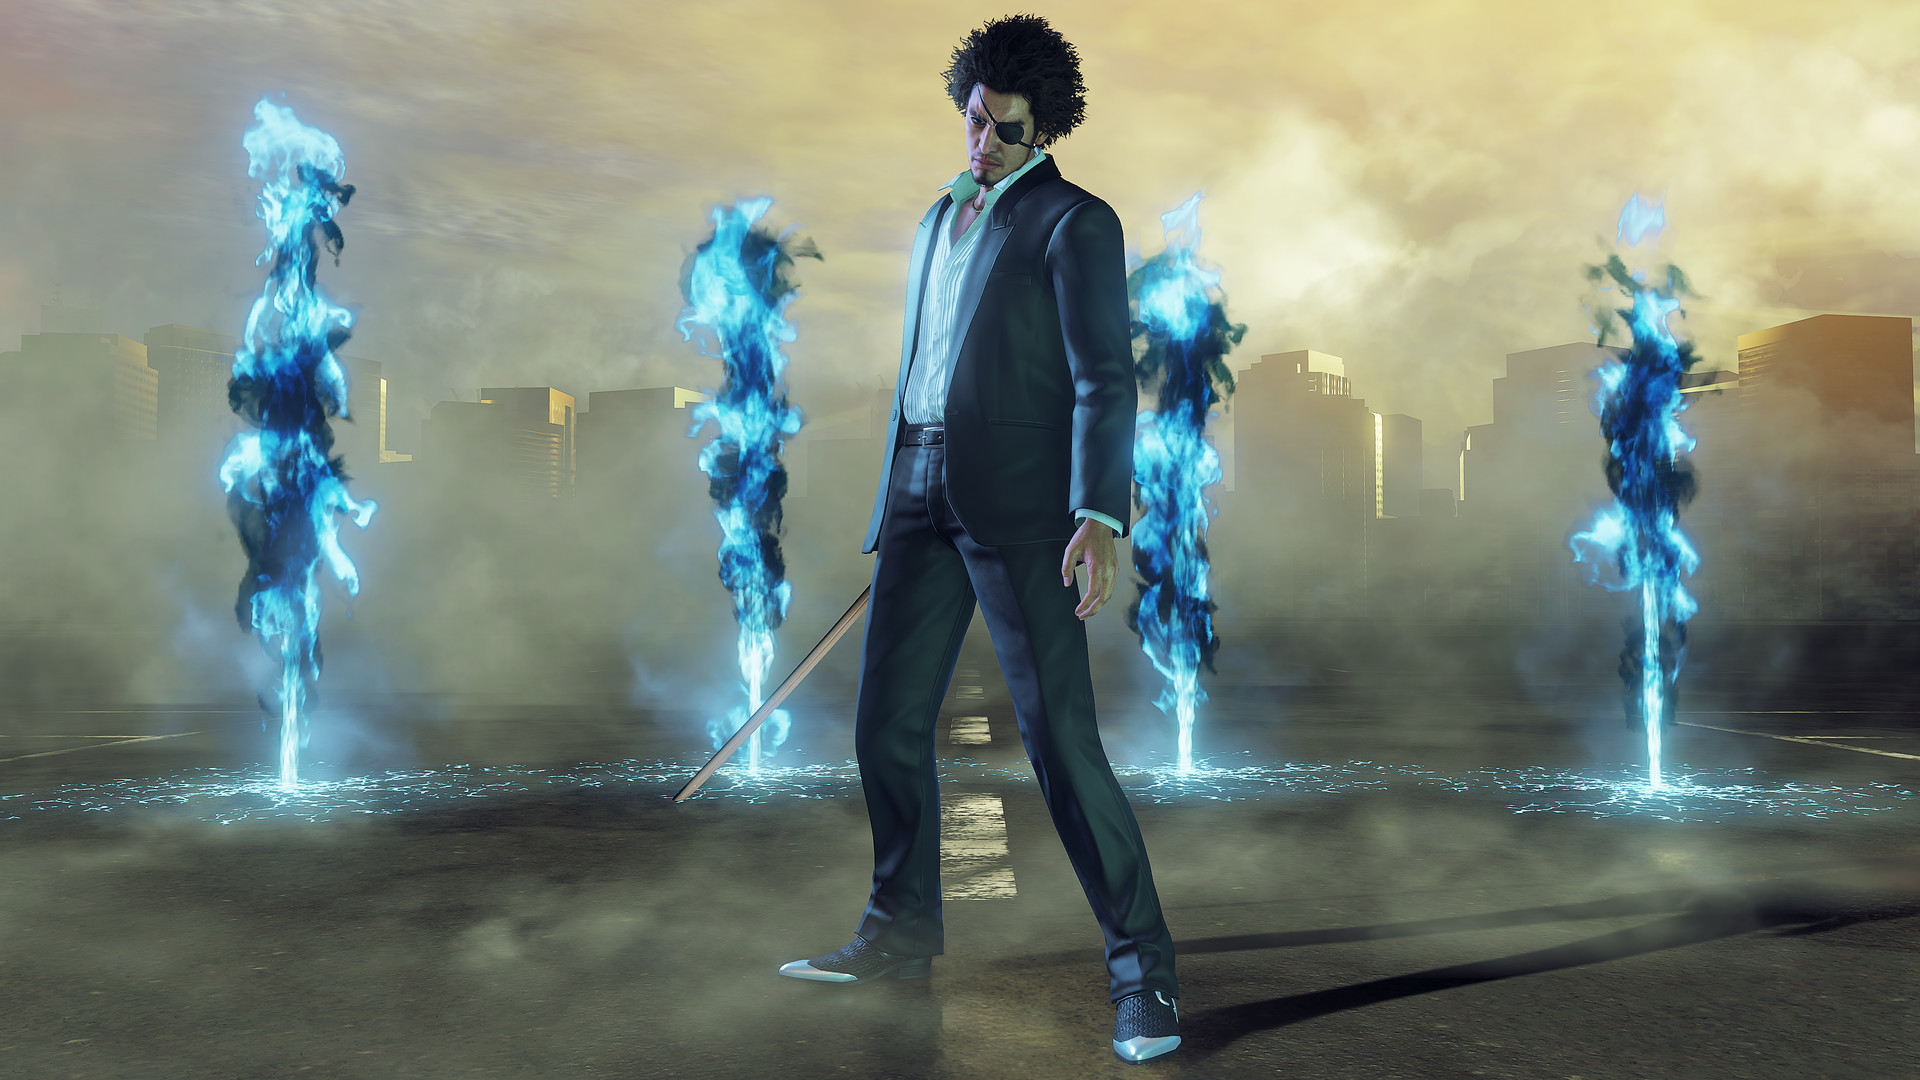 Kasuga dressed as Goro Majima stands menacingly with a sword by his side and jets of blue flame bursting into the air in the background.